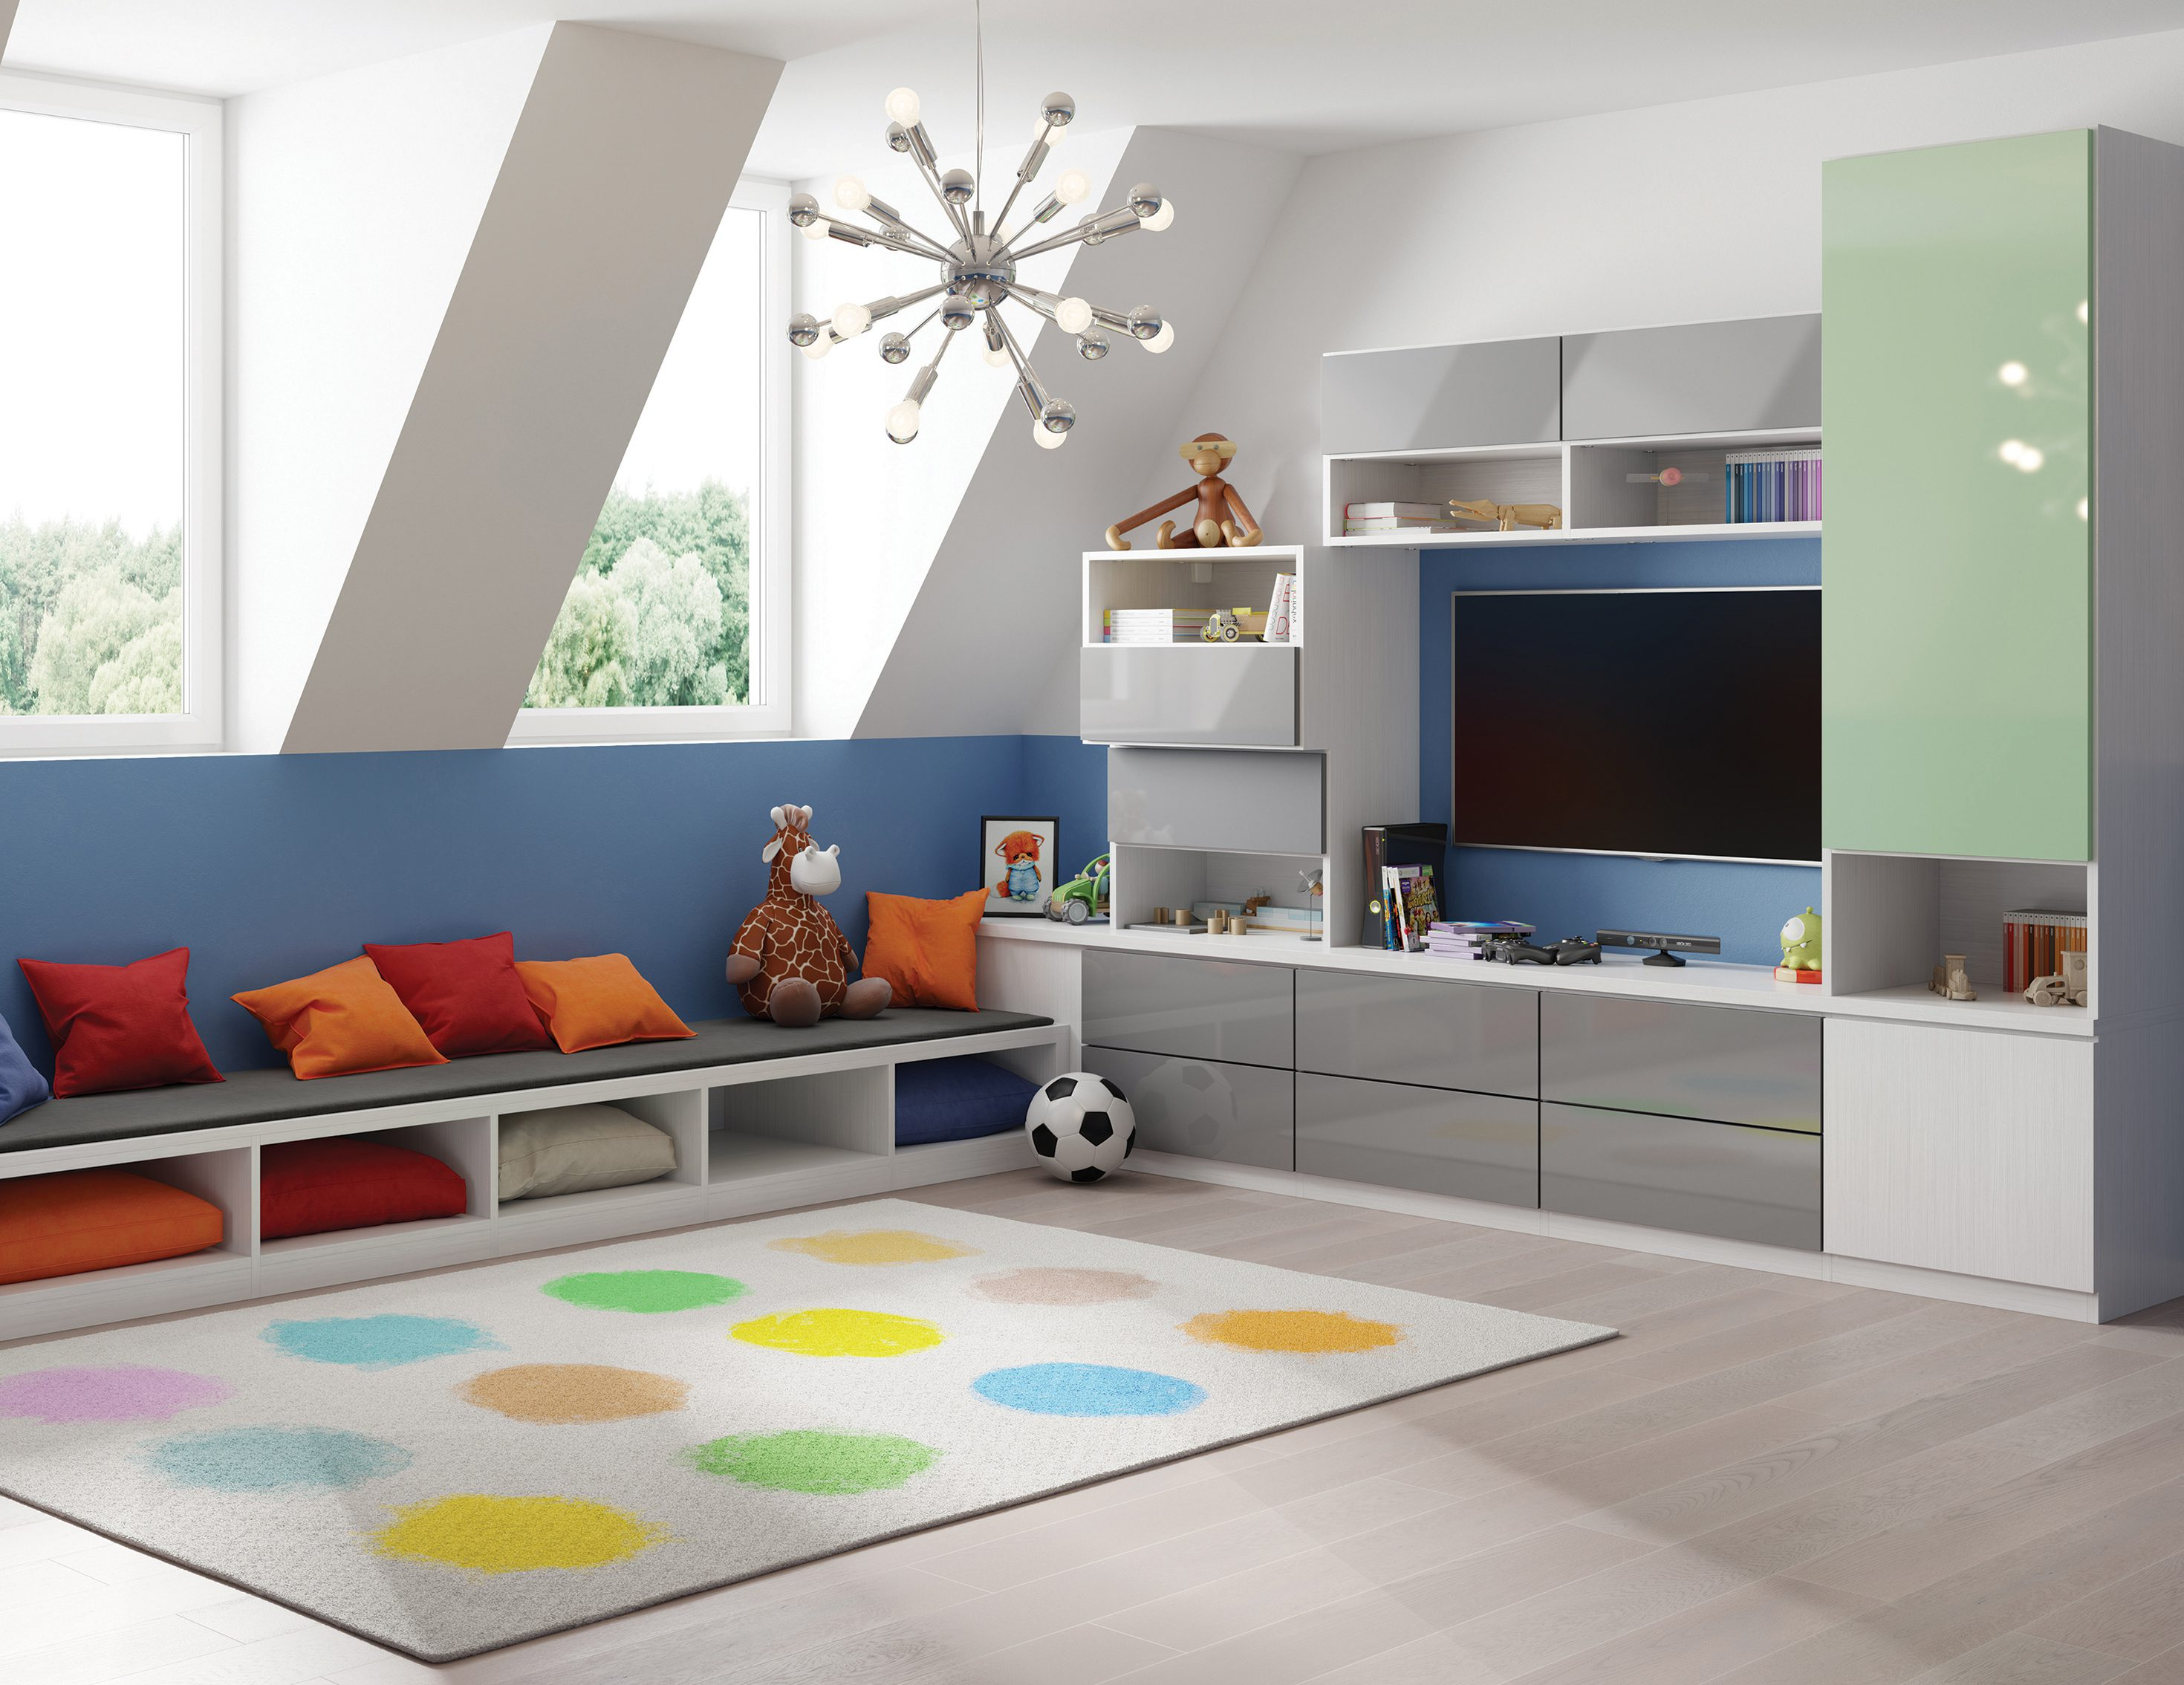 Playroom Storage Systems & Toy Storage Ideas - California Closets